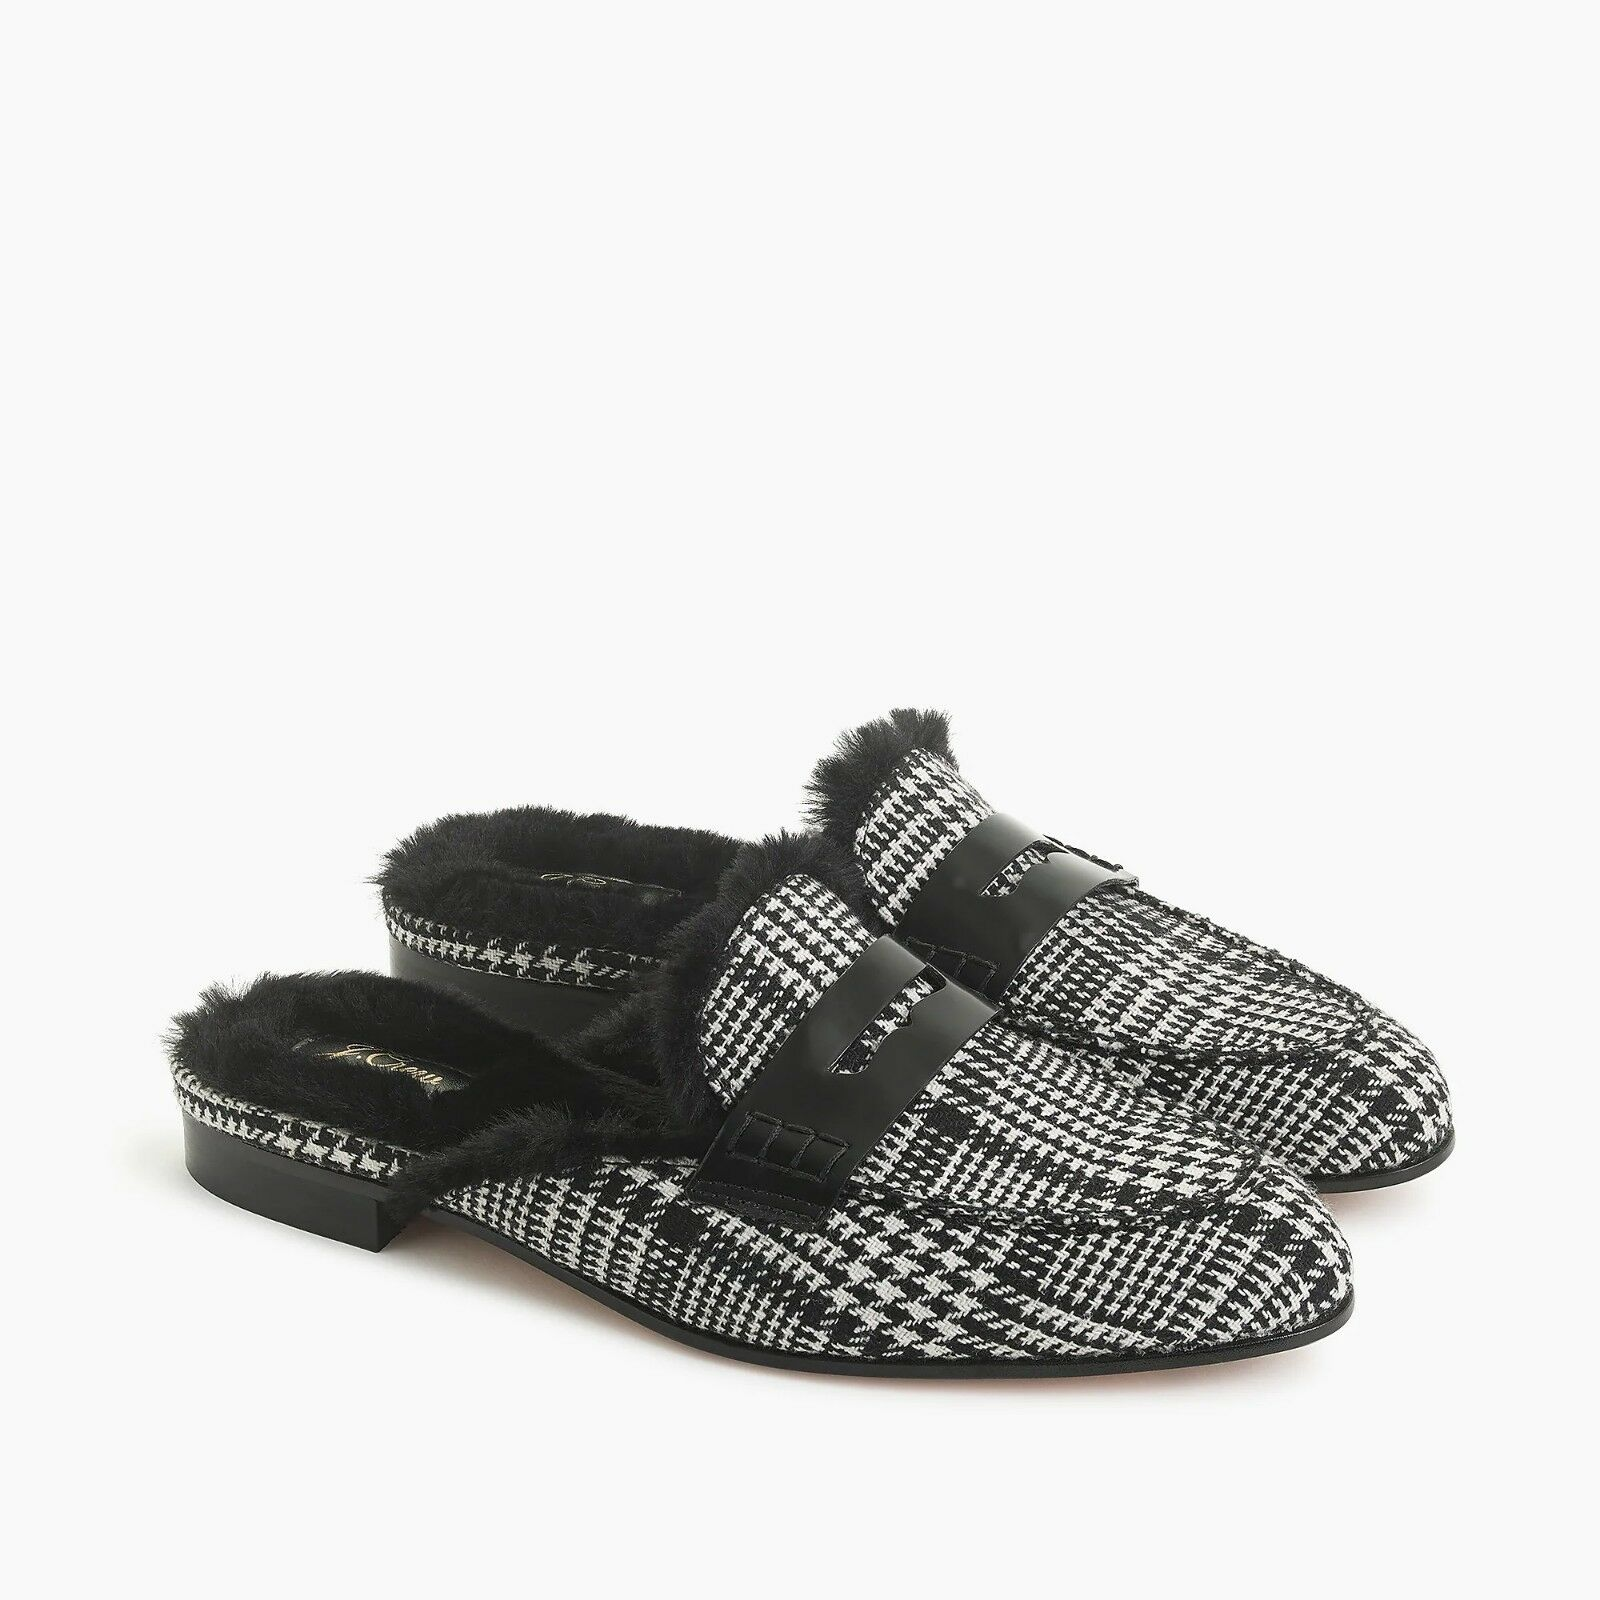 New J. Crew Faux Fur-Lined Academy Penny Loafers Mule in Glen Plaid - Size 9